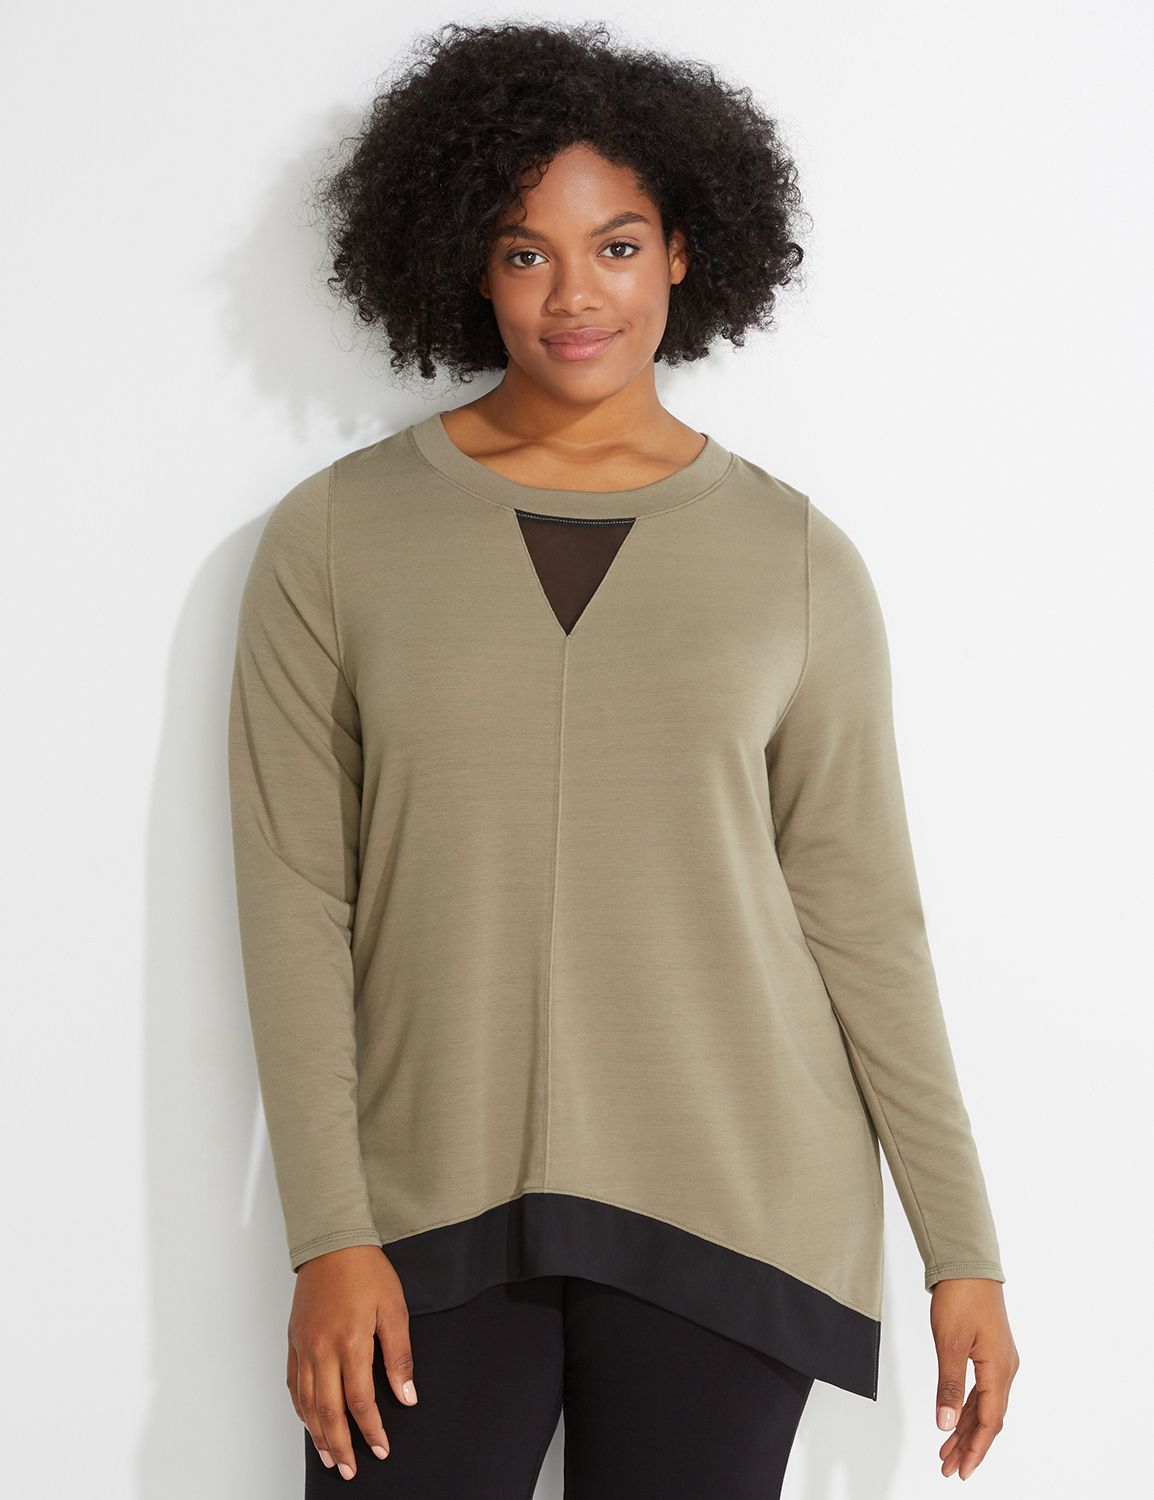 Lane Bryant Womens Spa Mesh-Hem Sweatshirt 26/28 Palmer Green